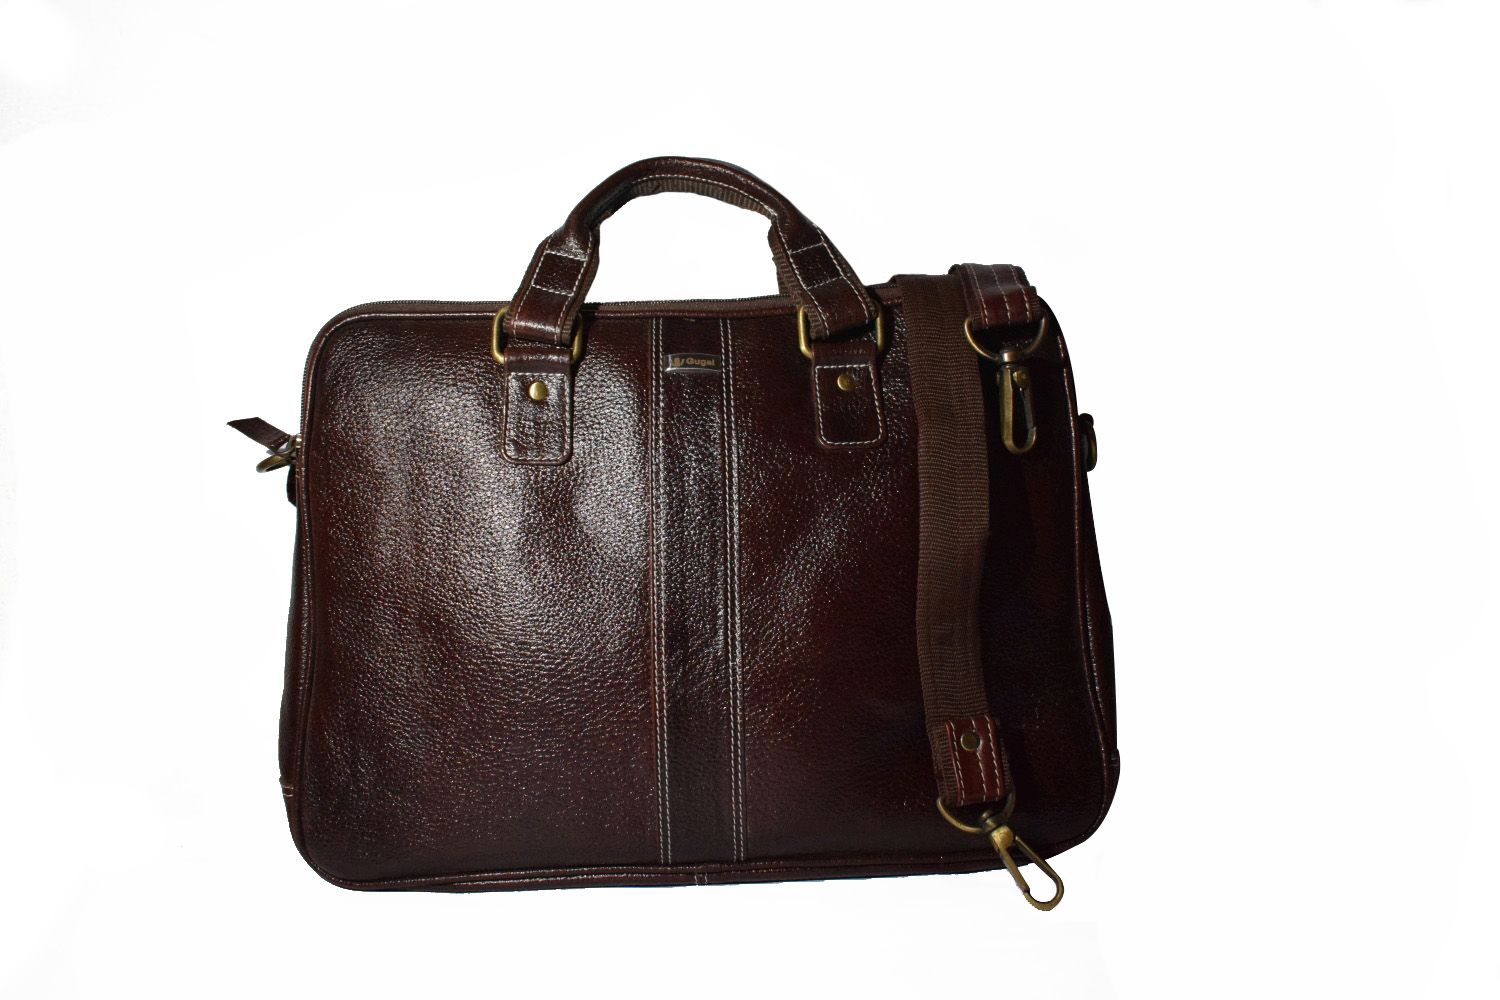 2f29b597ea62 Gugal India GI125 Brown Leather Office Bag - Buy Gugal India GI125 Brown Leather  Office Bag Online at Low Price - Snapdeal